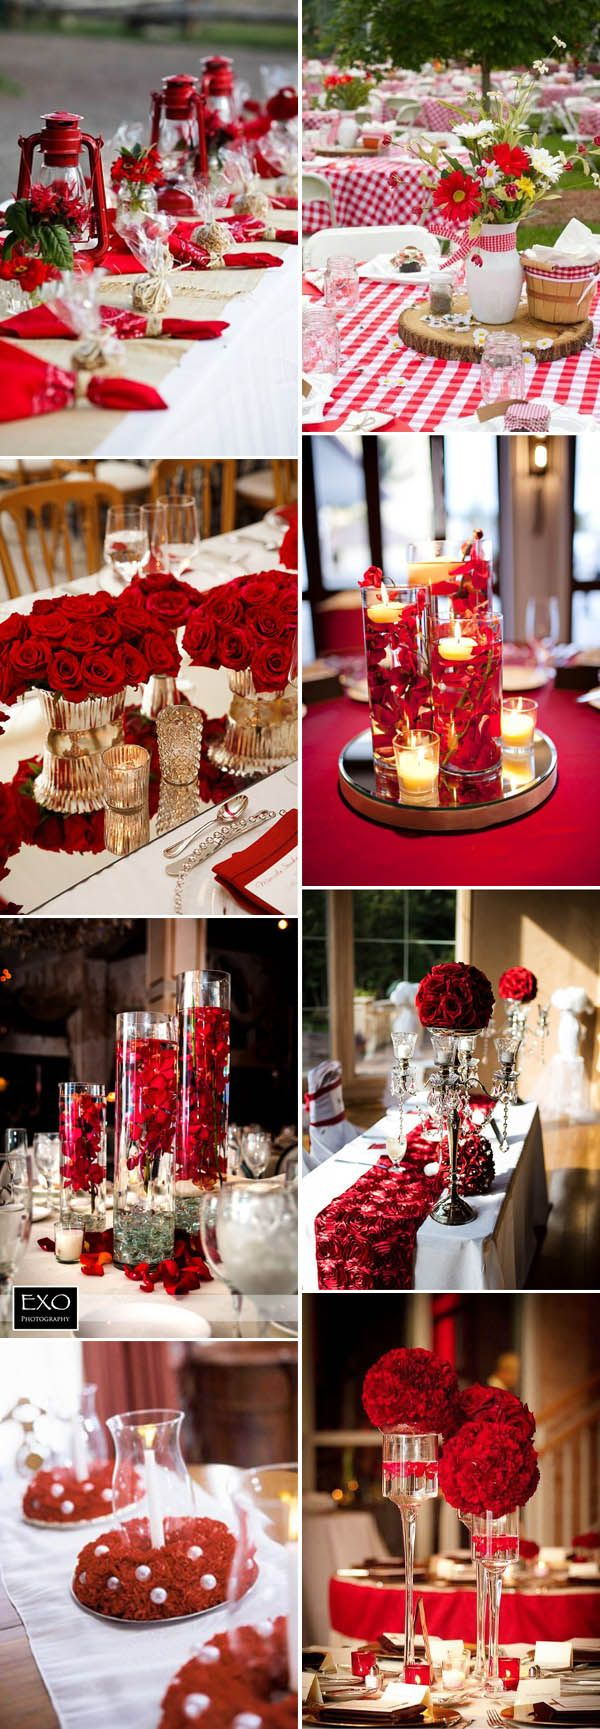 Maroon and white wedding decor  gorgeous wedding centerpieces ideas for red and white weddings Visit